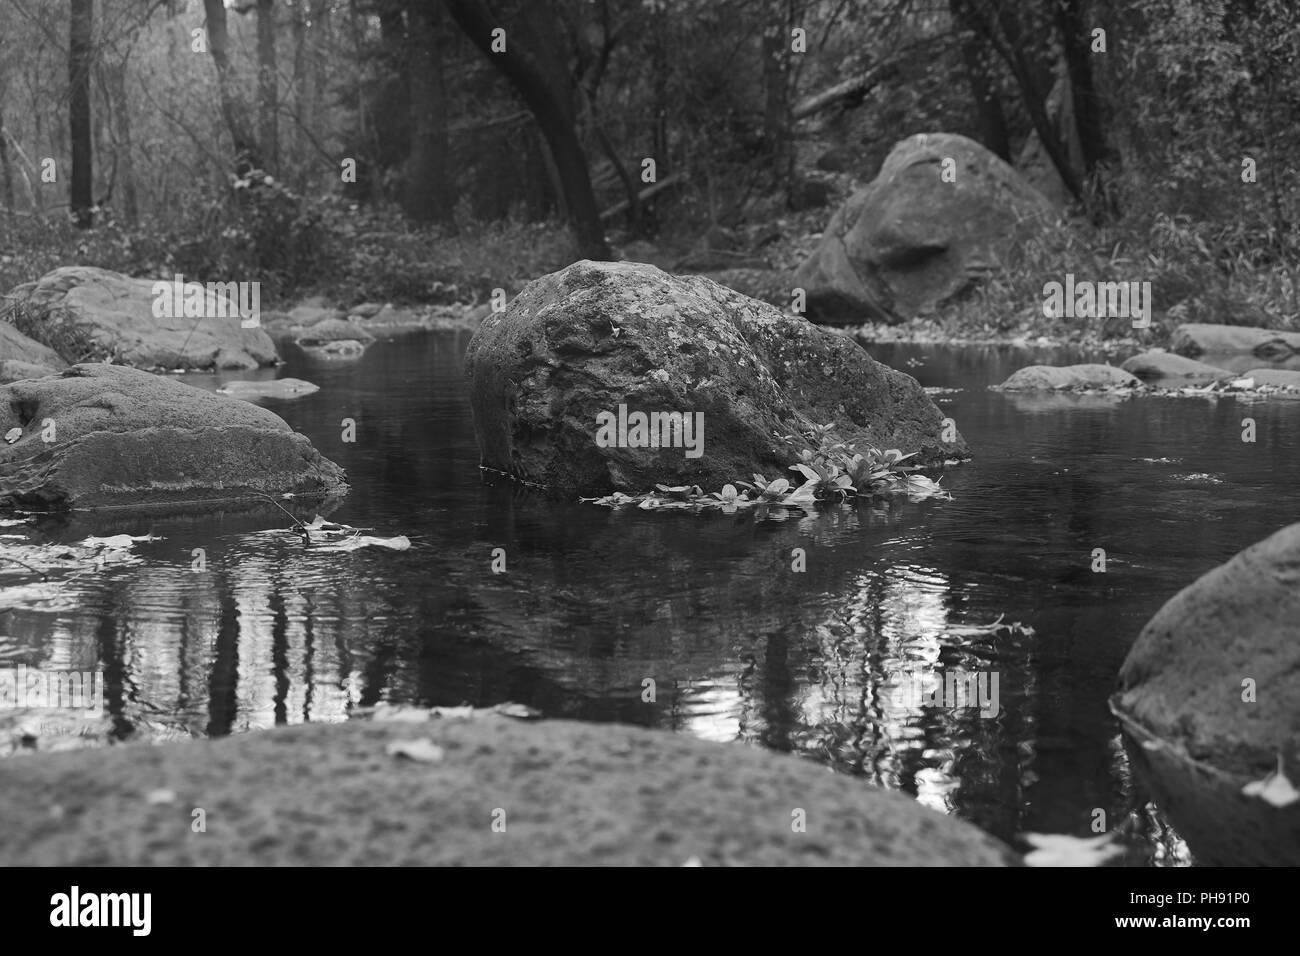 black and white picture of a rocky creek stream. - Stock Image